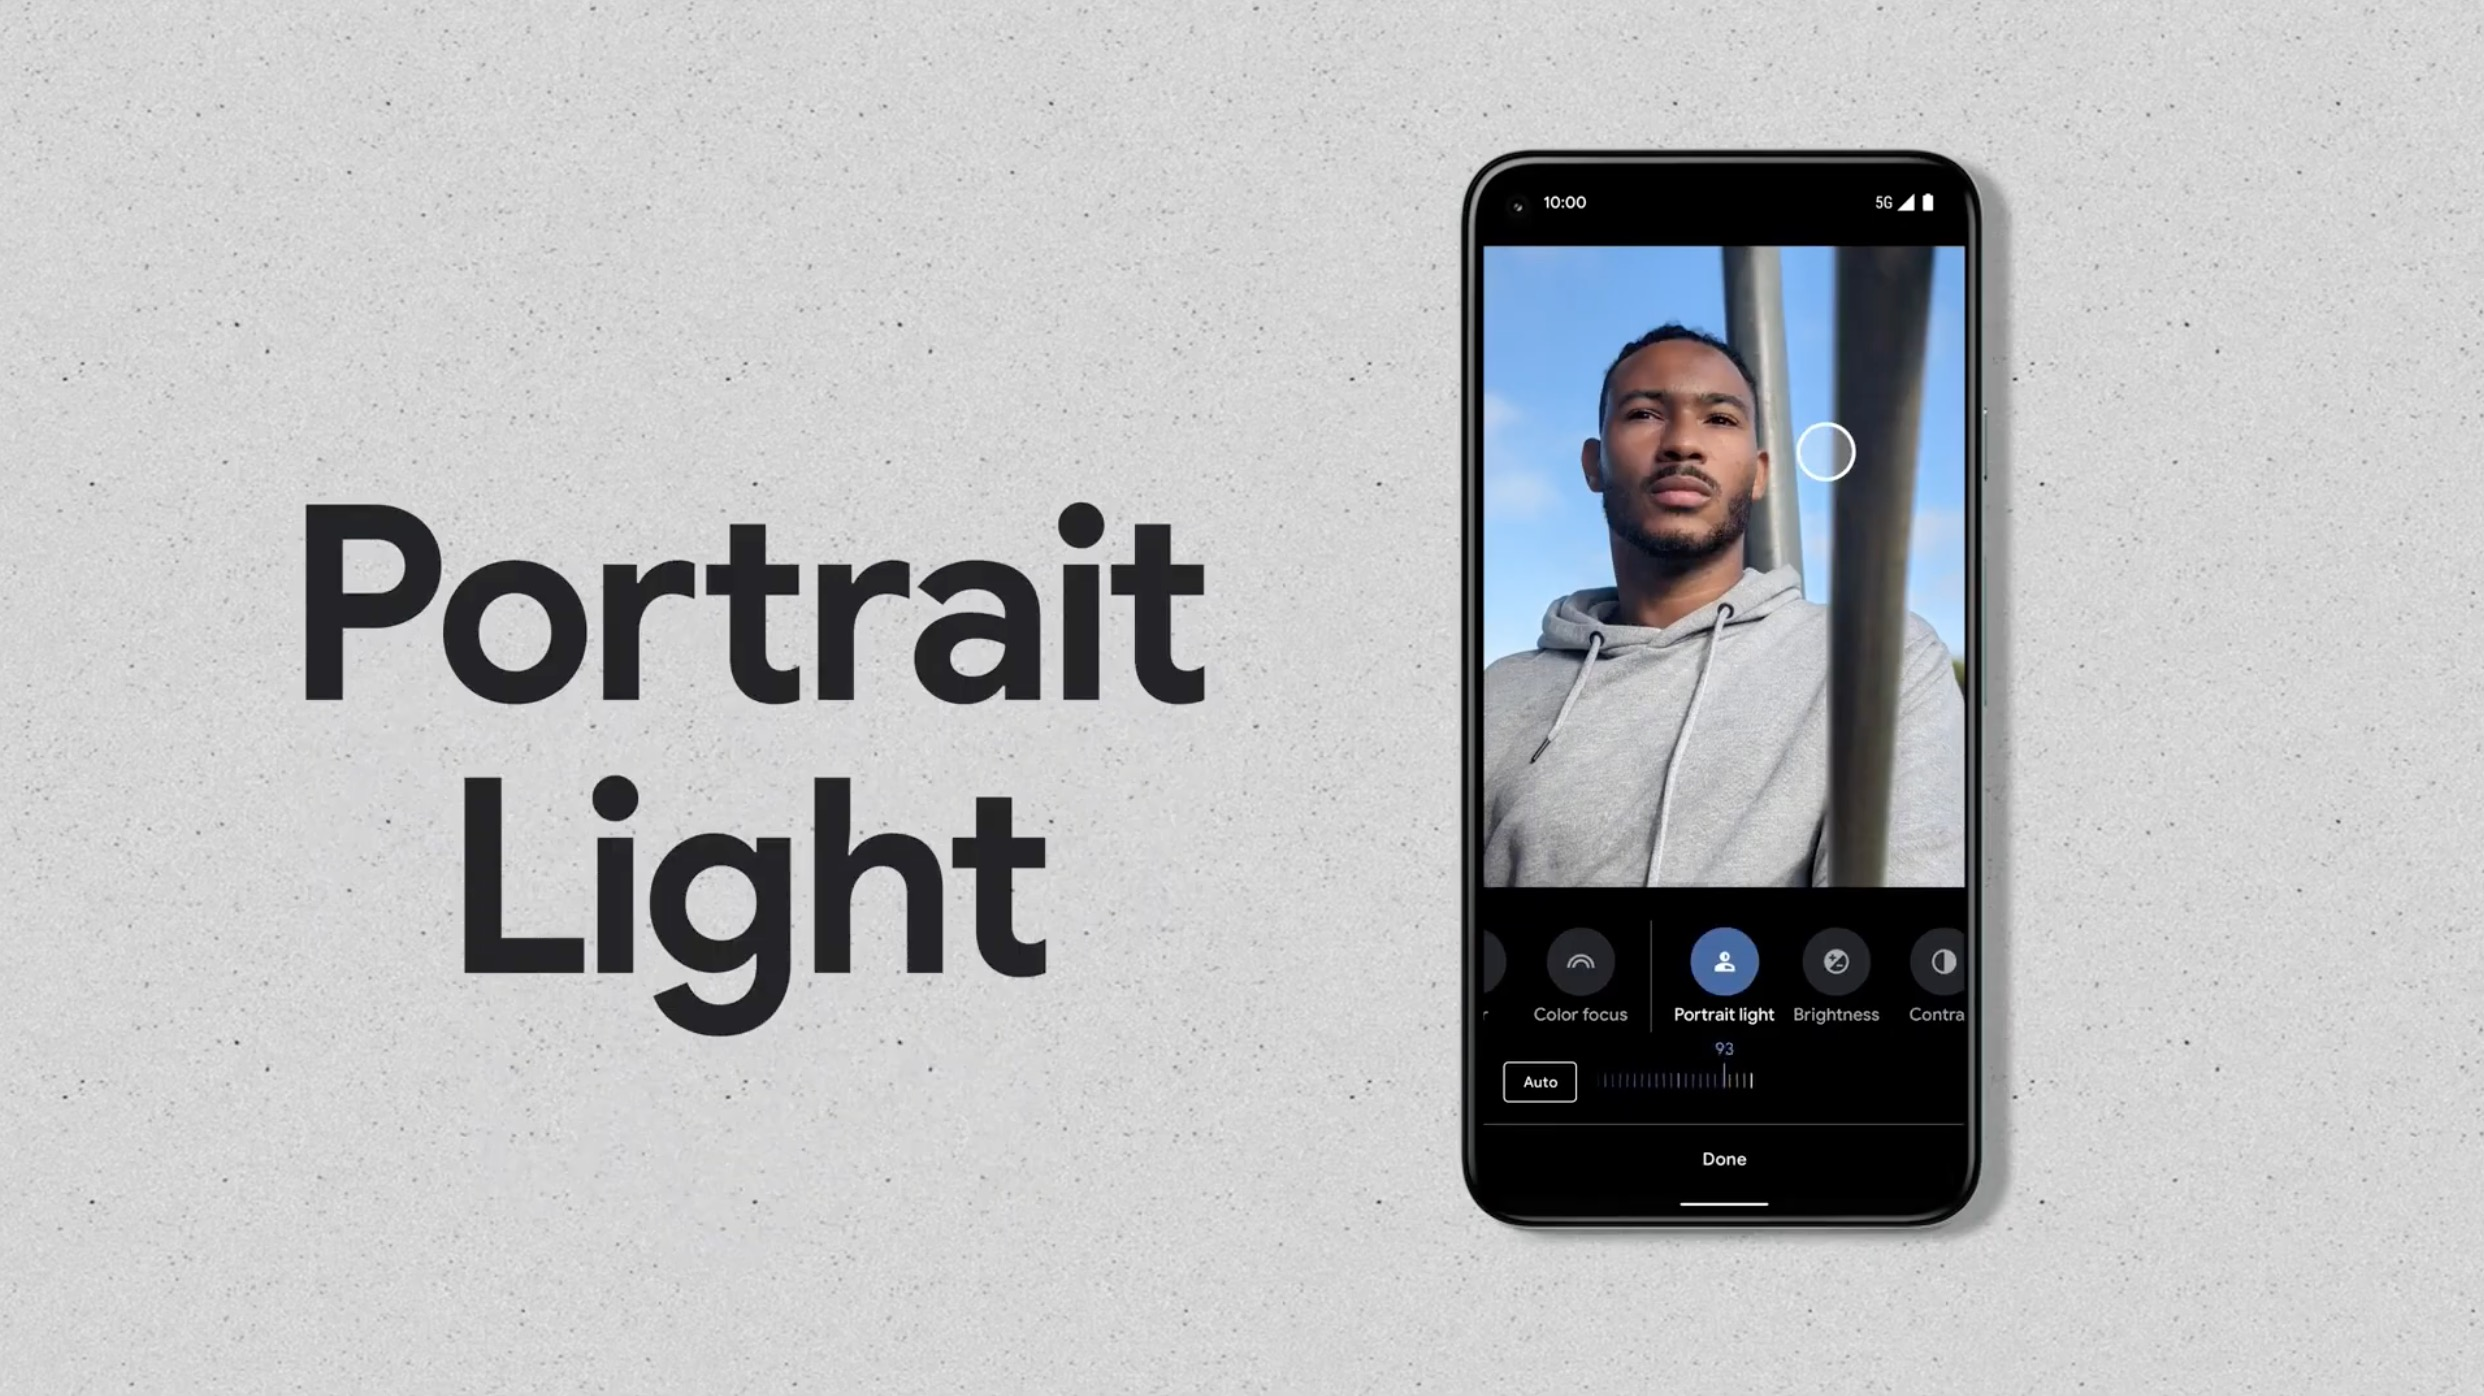 Pixel 5 and 4a 5g get the same, improved cameras with rear ultrawide lens, Night Sight portraits and more 3